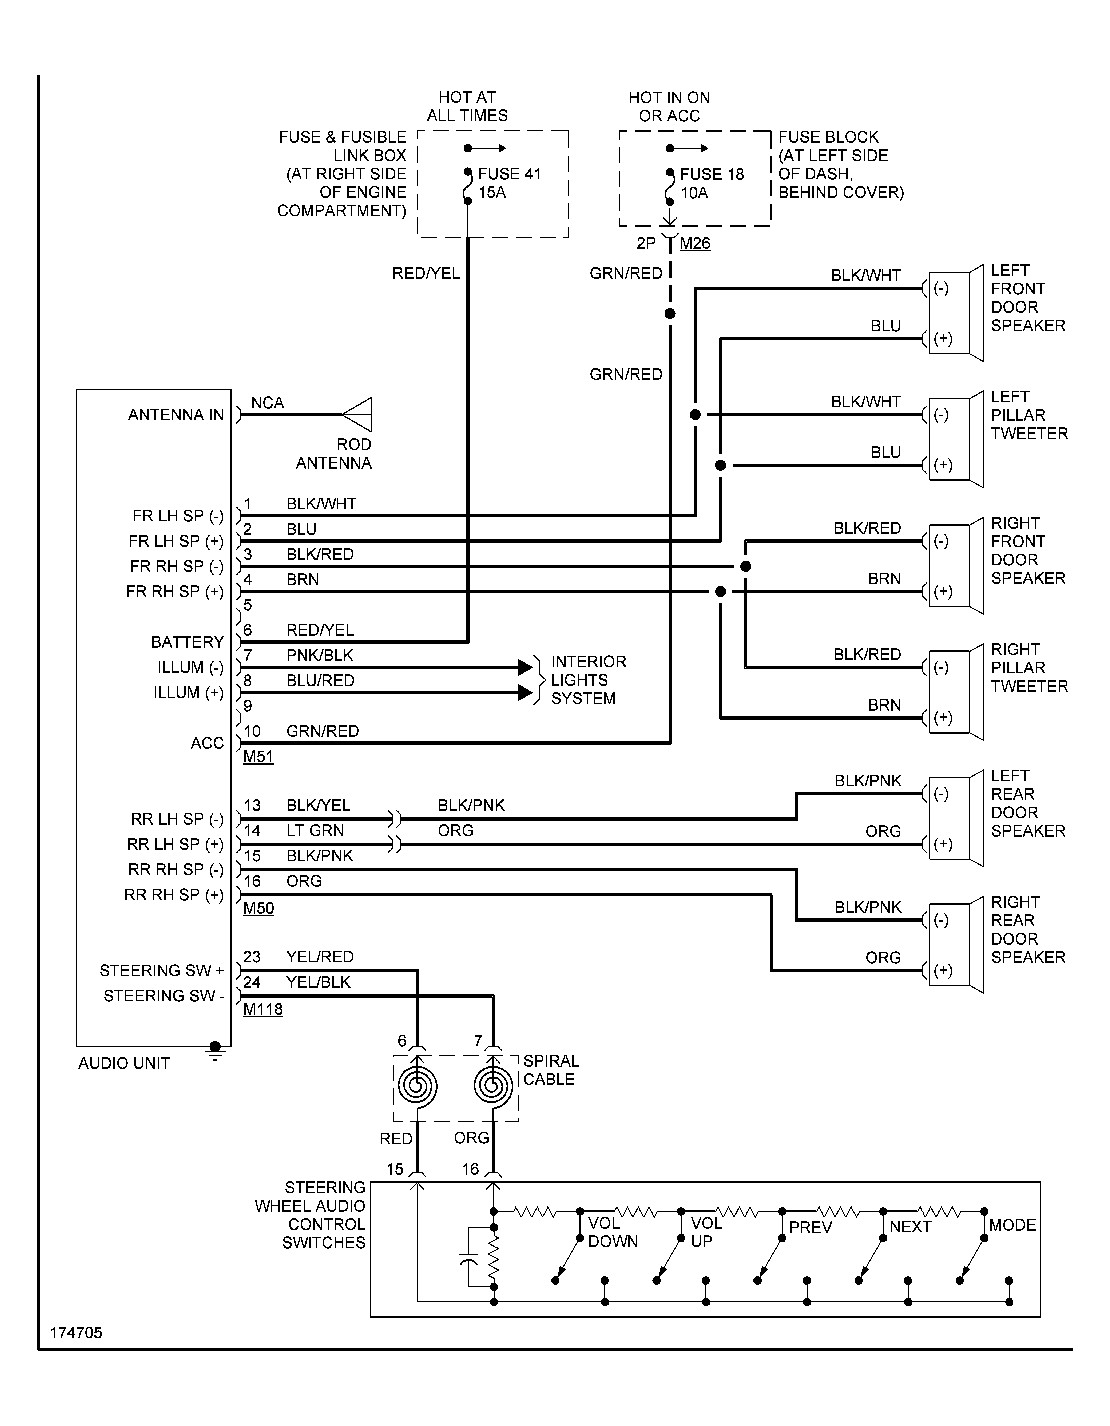 nissan frontier brake controller wiring diagram Collection-exelent nissan frontier wiring diagram collection best images for rh oursweetbakeshop info wiring diagram for 1998 nissan frontier wiring diagram for 2002 16-a